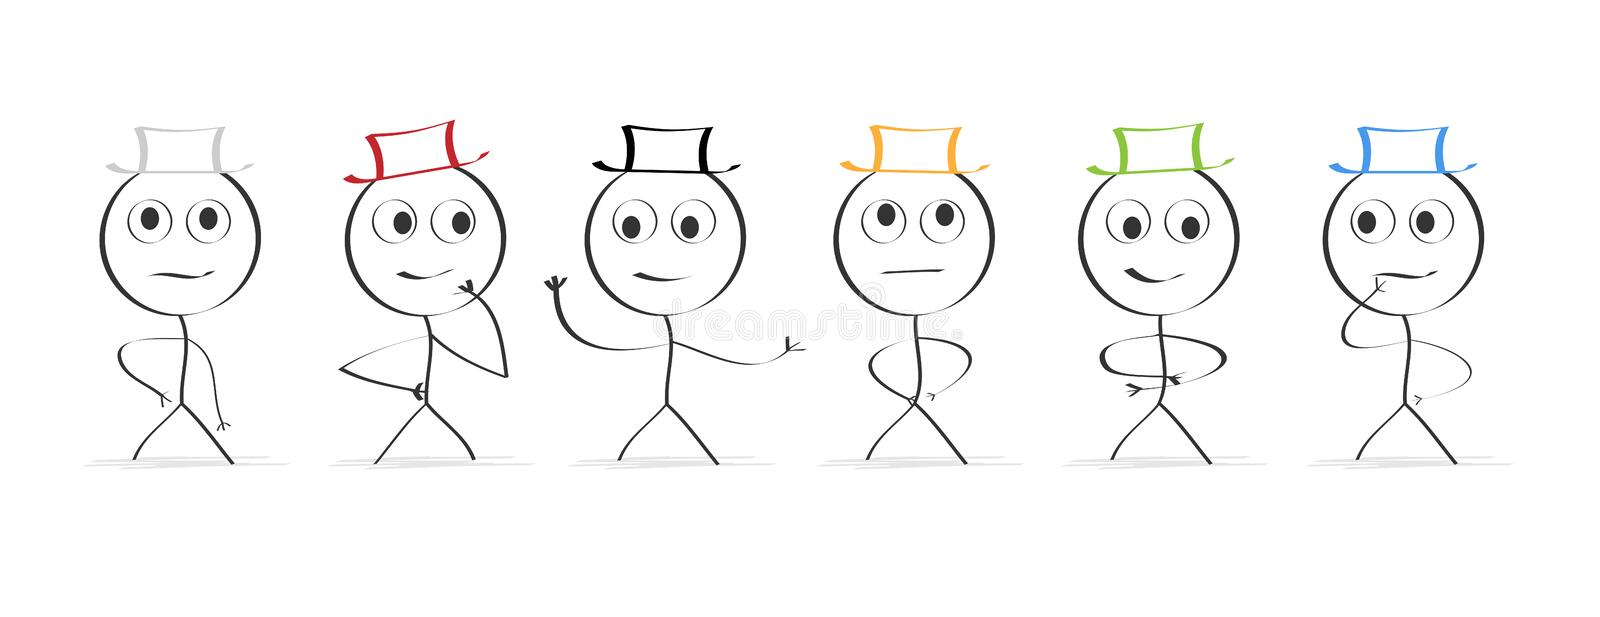 Six hats...thinking royalty free stock images